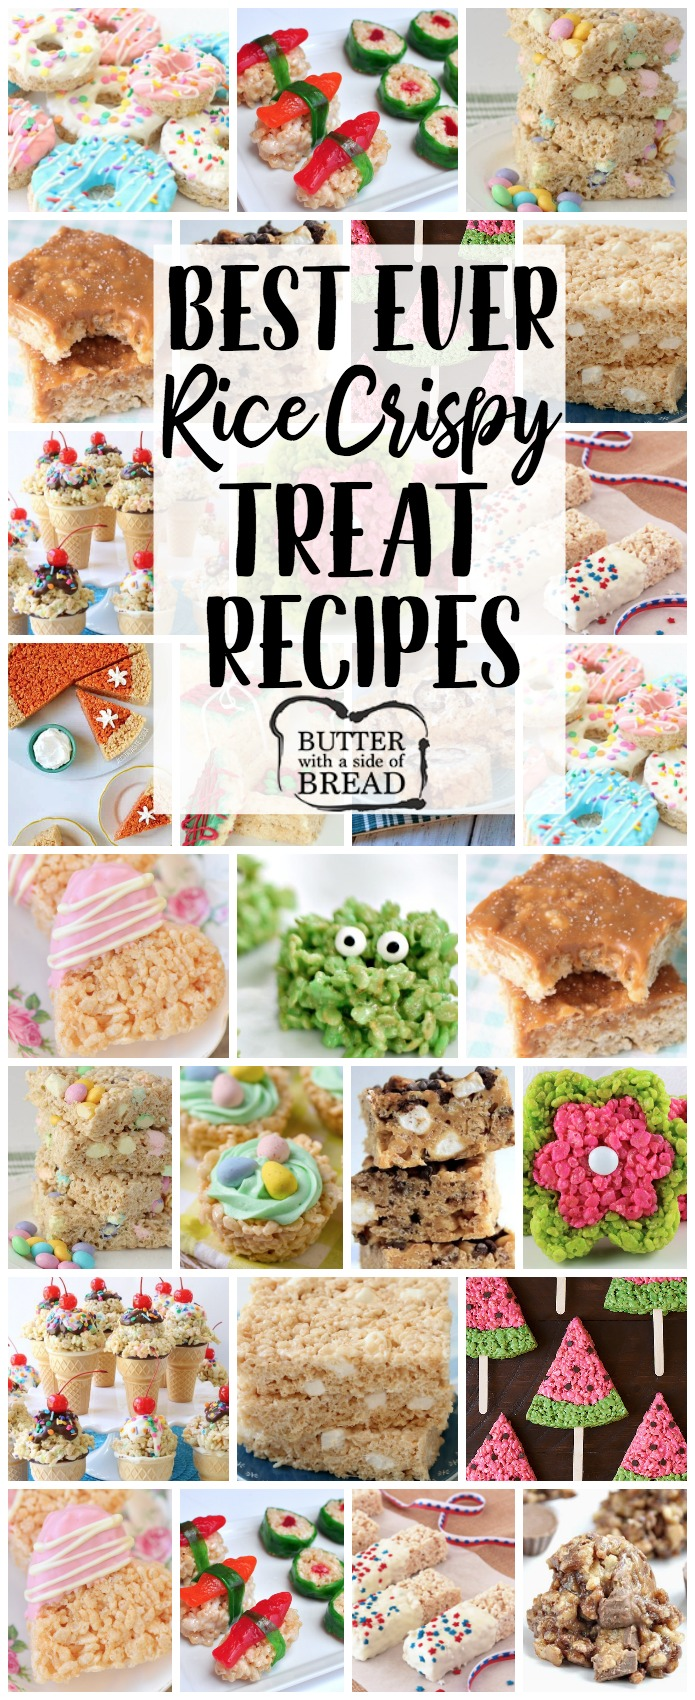 Rice Crispy Treat recipes for any and all occasions! From salted caramel to churro and everything in between, you're sure to find a rice crispy treat recipe you'll love. Our basic recipe for Krispie Treats is THE BEST! #ricekrispie #ricecrispy #krispies #dessert #food #treat #marshmallow